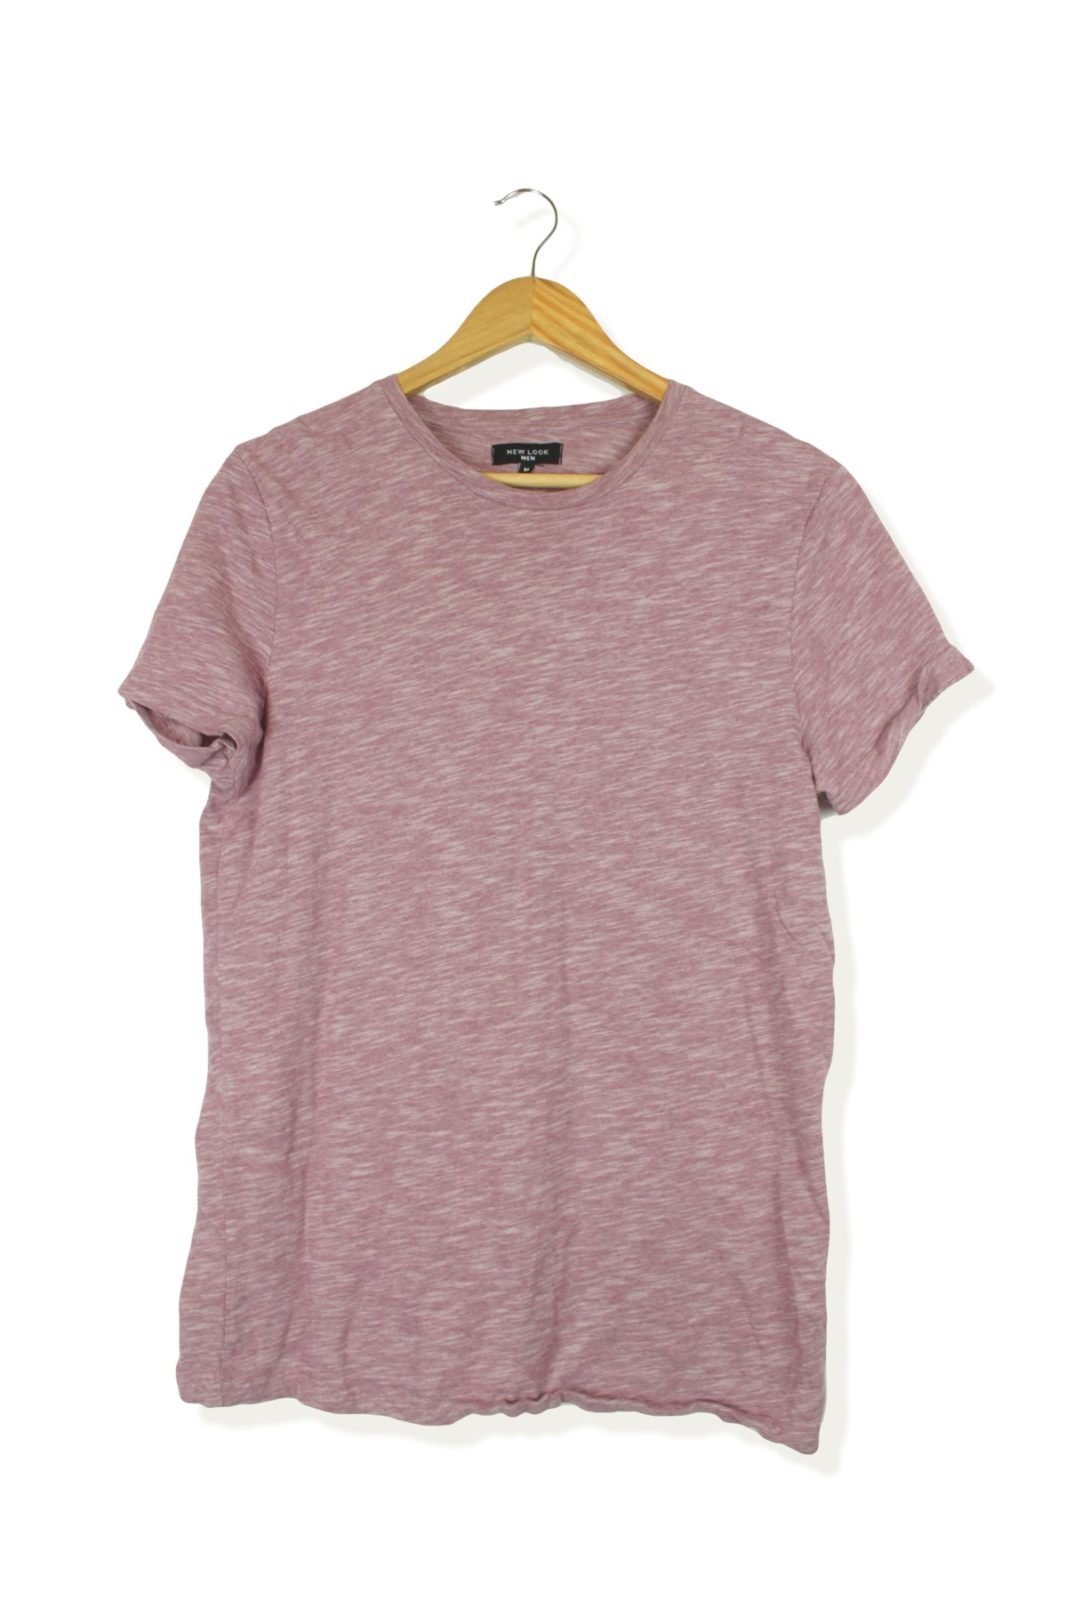 Second-hand Clothing - Second-Hand Clothing, Men, Tops & Shirts